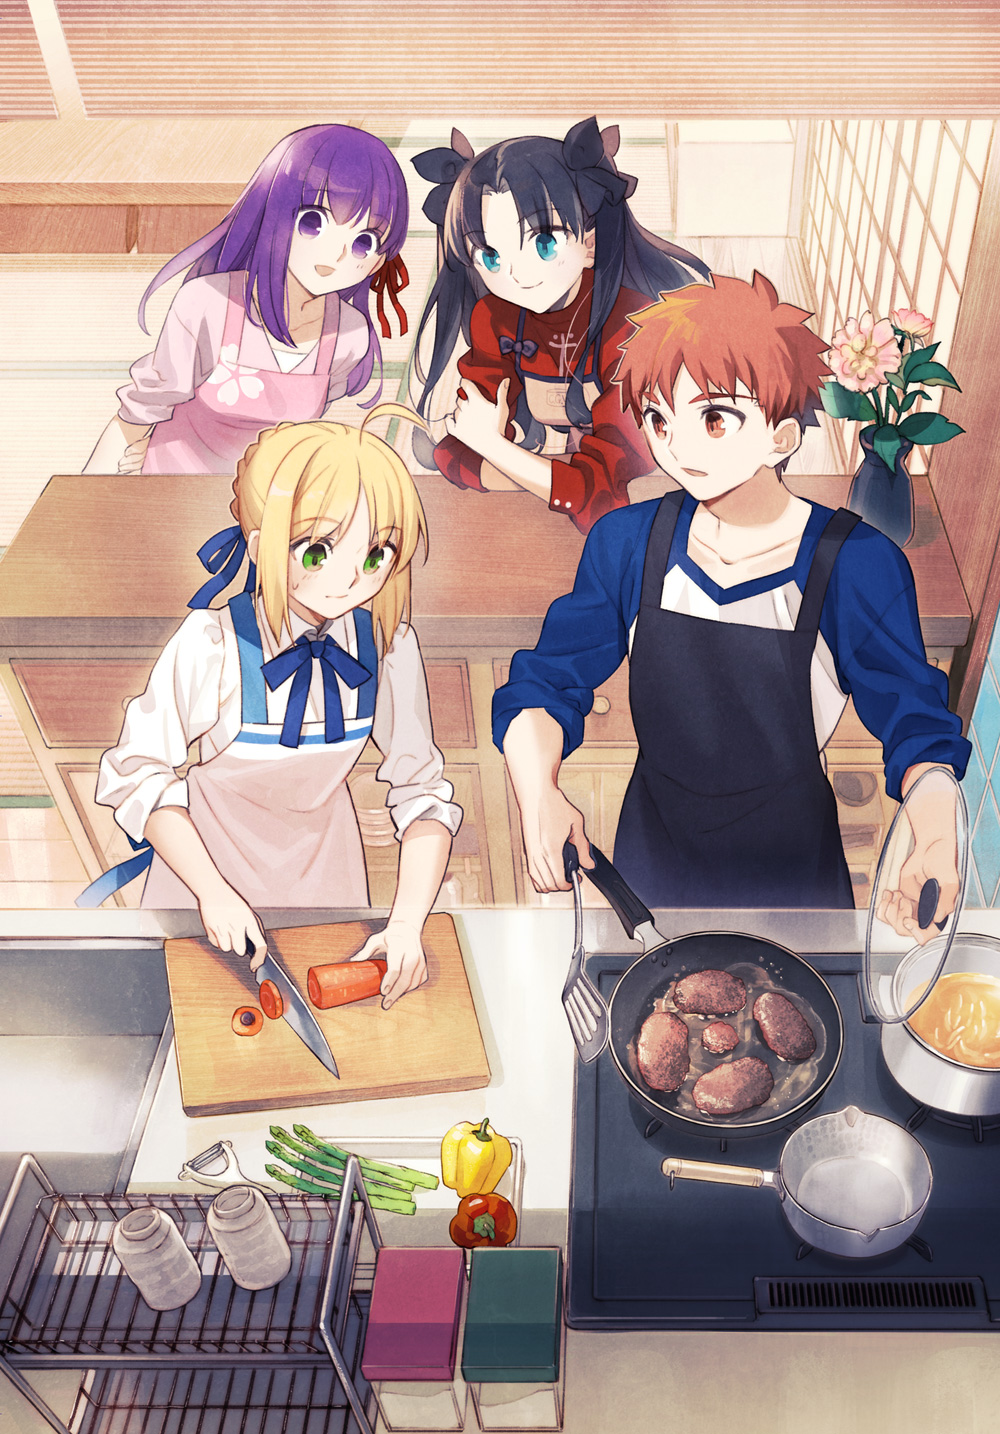 Fate Stay Night Spin Off Adventure Game Everyday Today S Menu For The Emiya Family Announced For Switch Gematsu Just stick with what you could pick up from fate/zero and make your own ending. gematsu